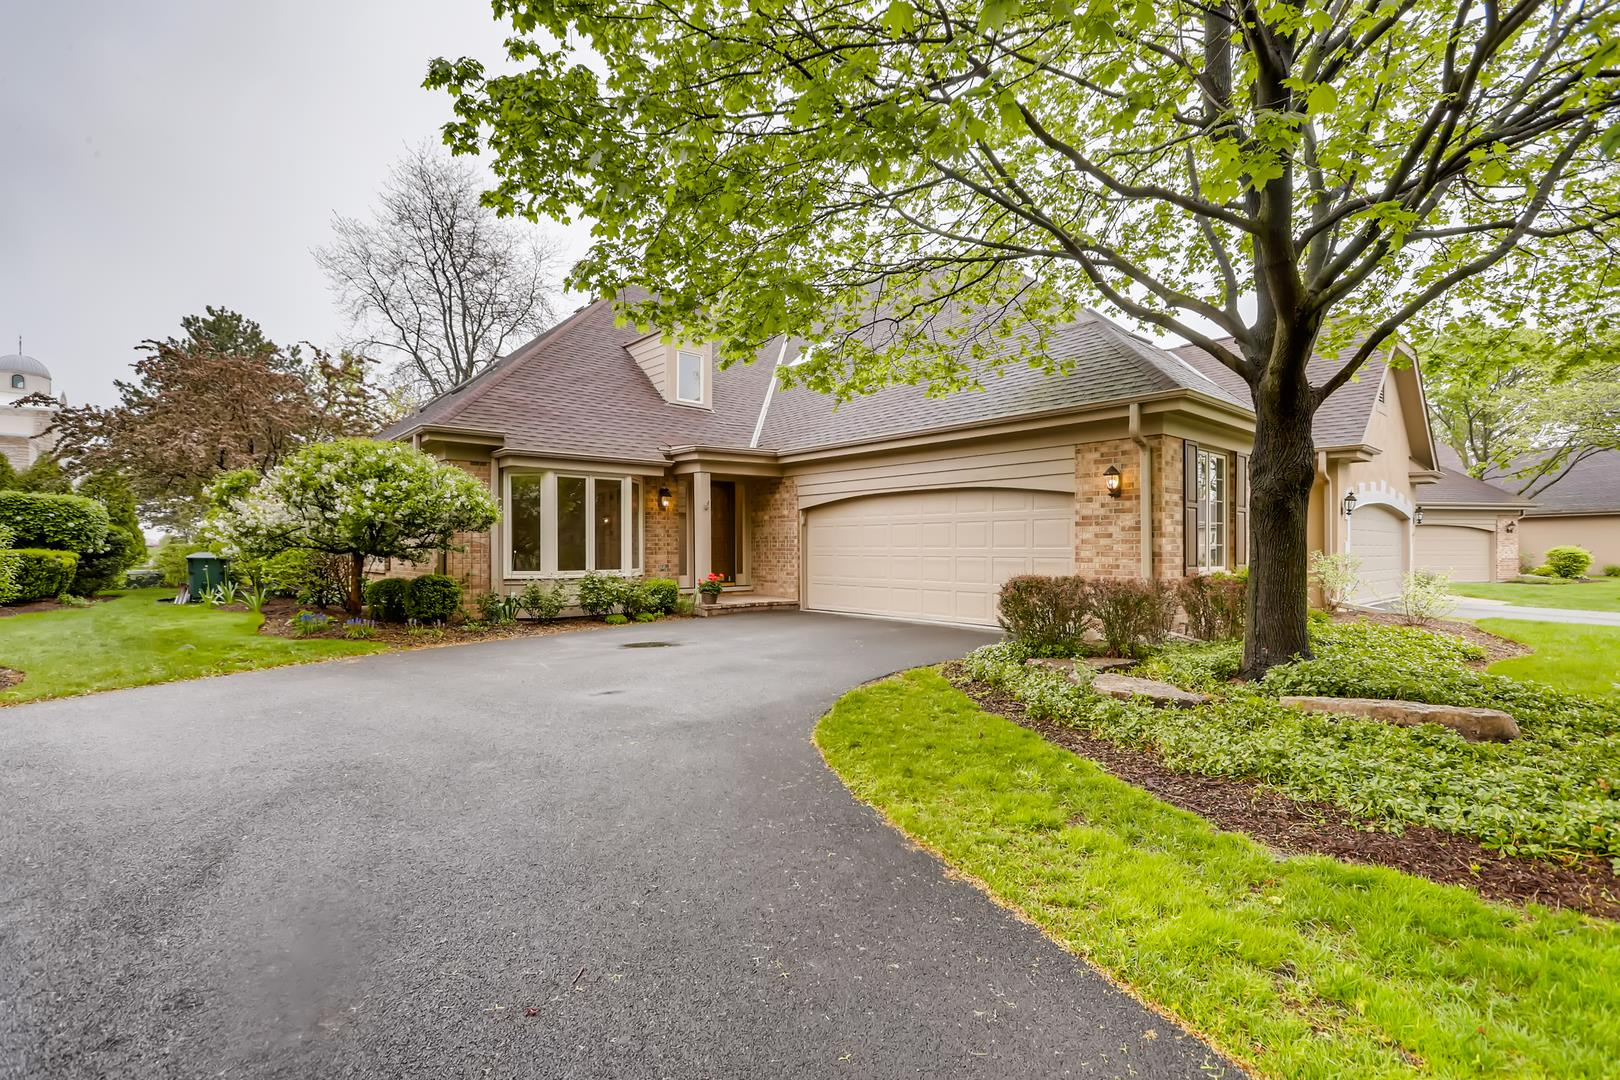 20 Pine Tree Lane, Burr Ridge, IL 60527 - #: 11076218